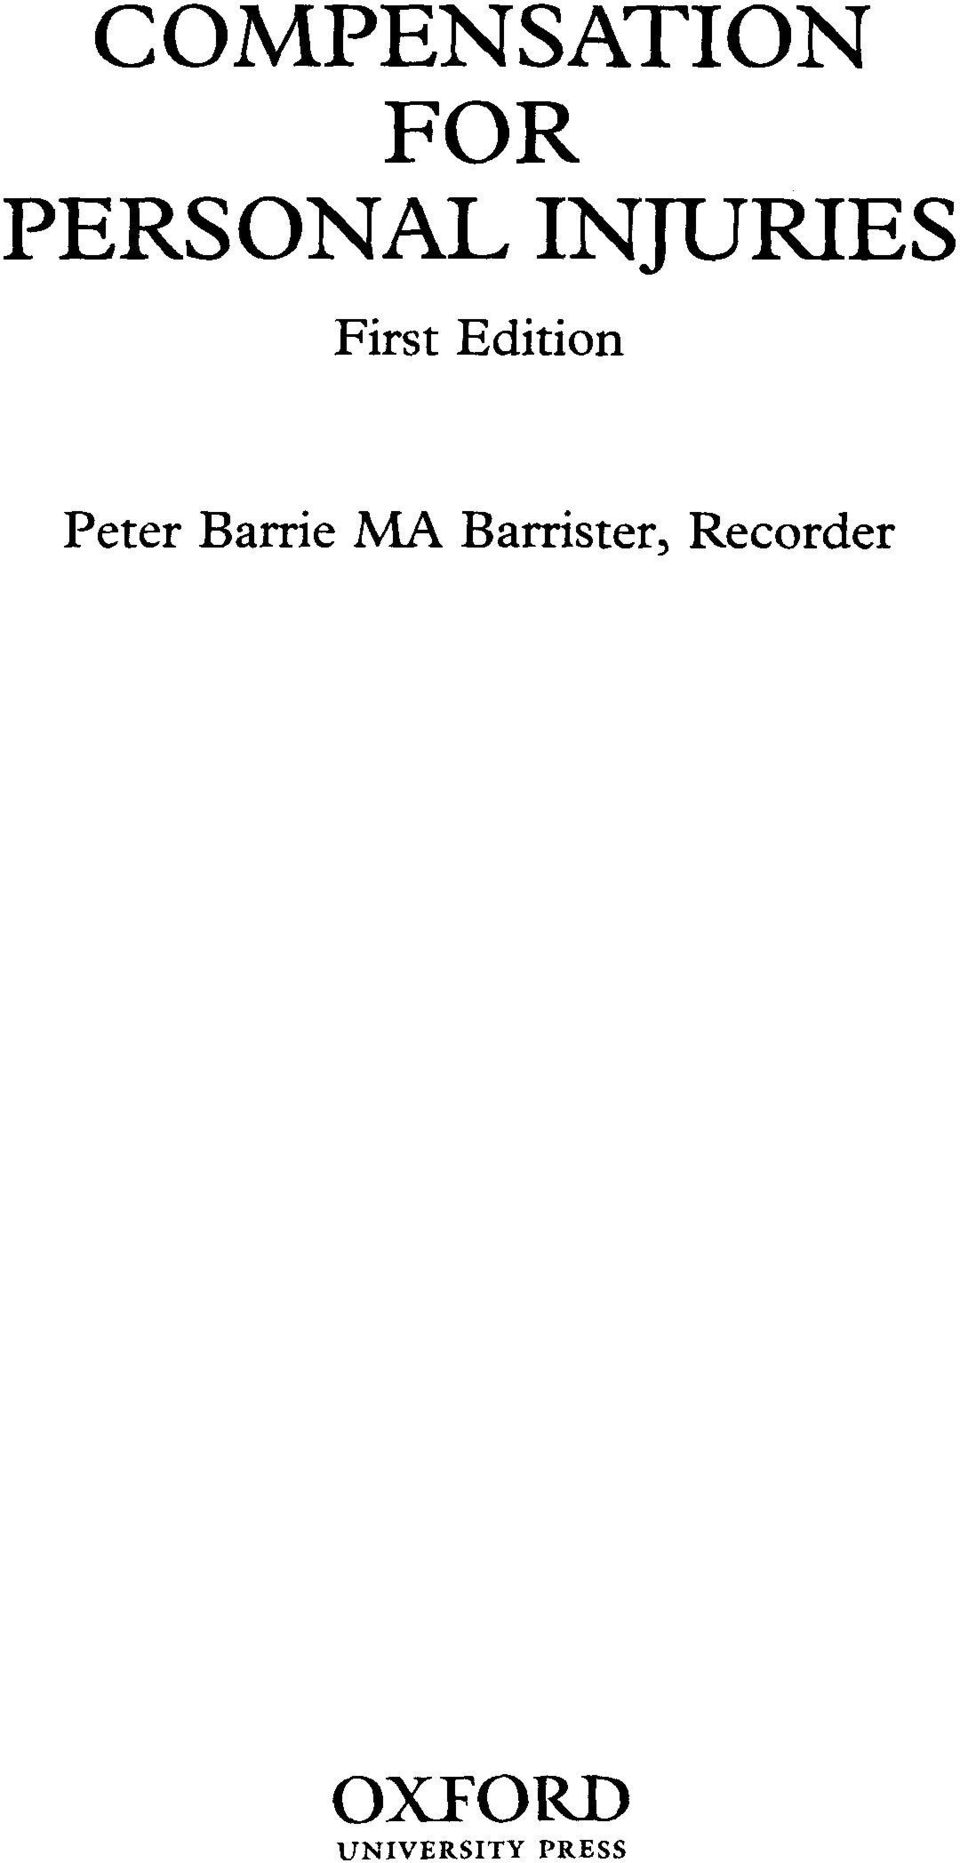 Peter Barrie MA Barrister,